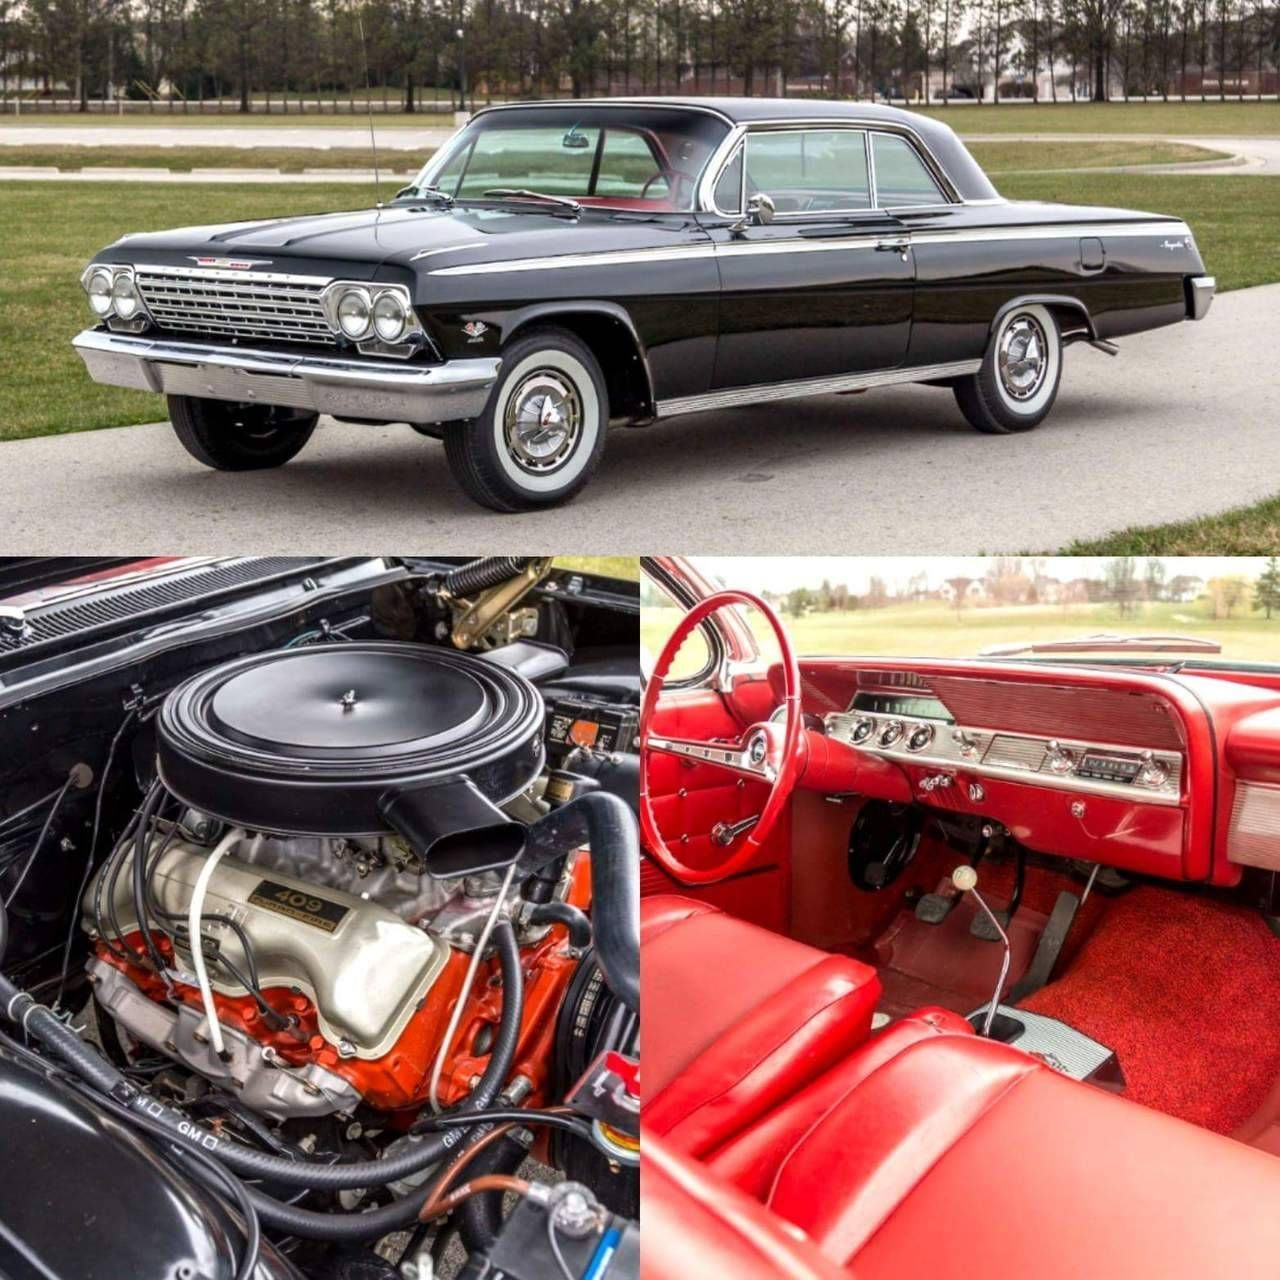 Classic Cars And Women 1962 Chevrolet Impala With A 409